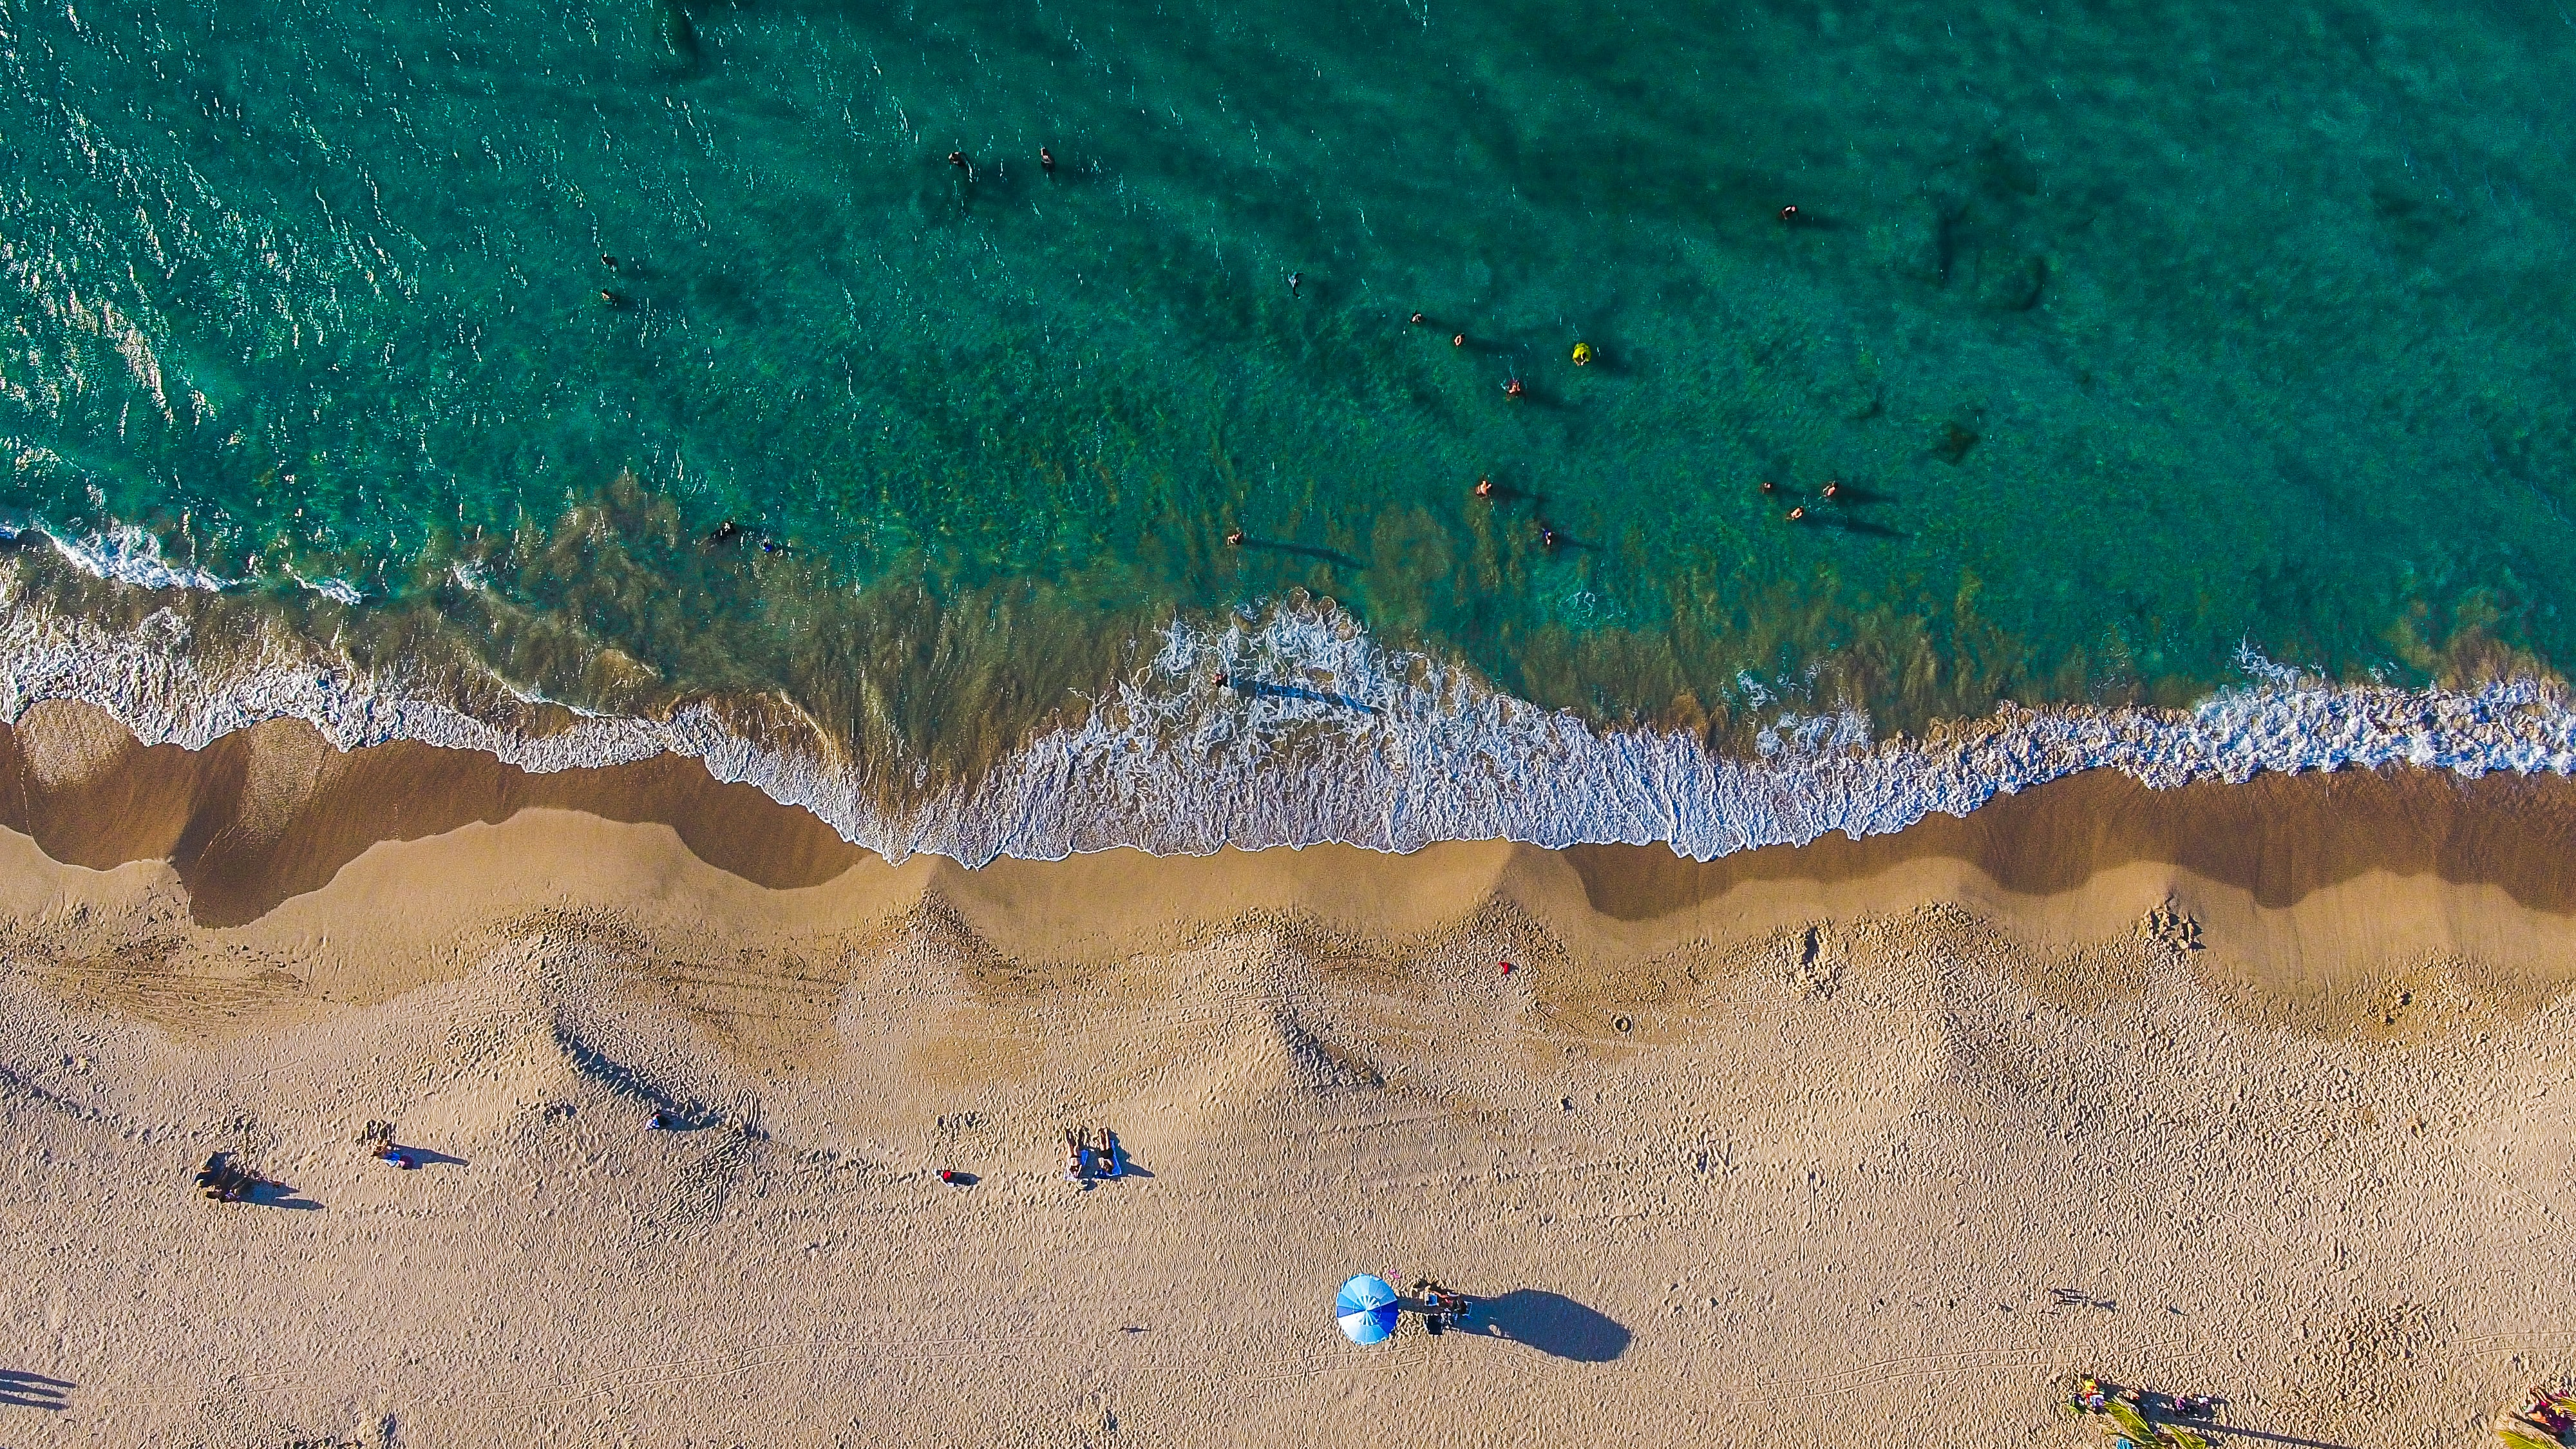 aerial photography of person walking near seashore during daytime